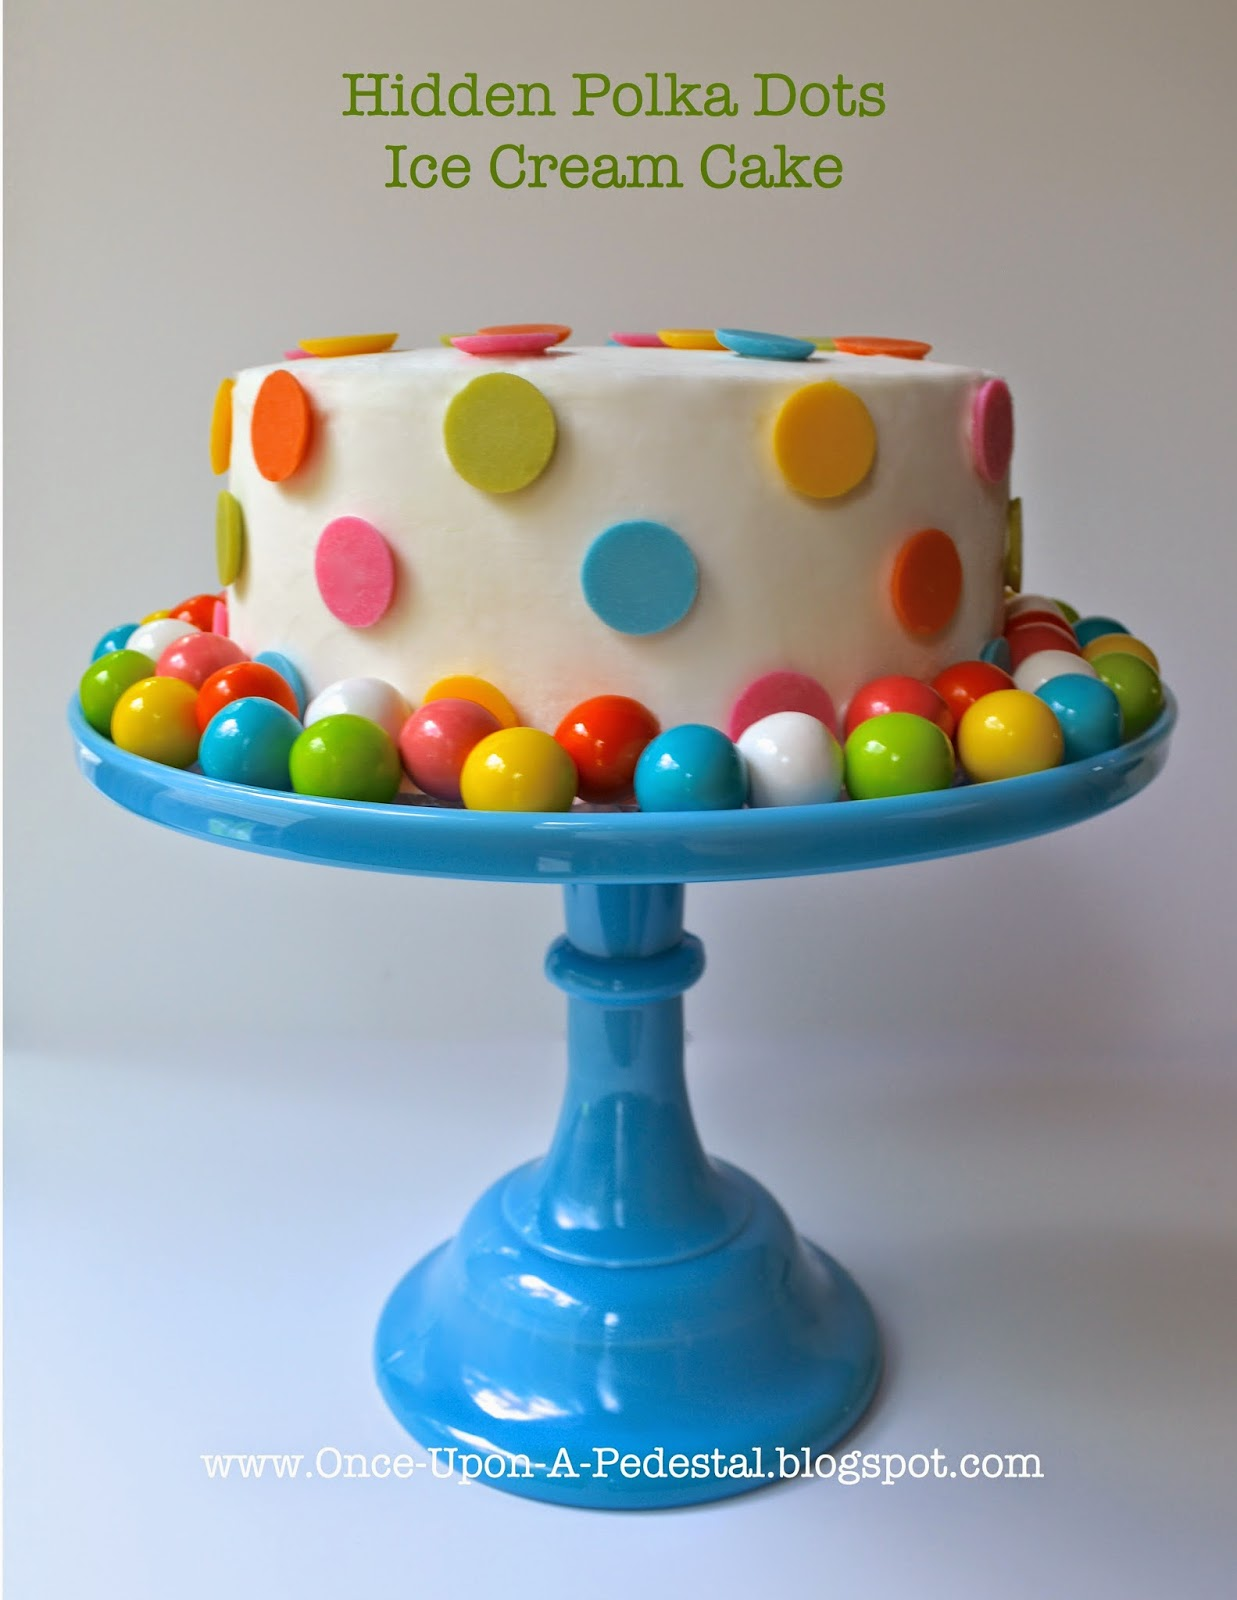 polka-dot-suprise-inside-cake-rainbow-ice-cream-free-tutorial-deborah-stauch